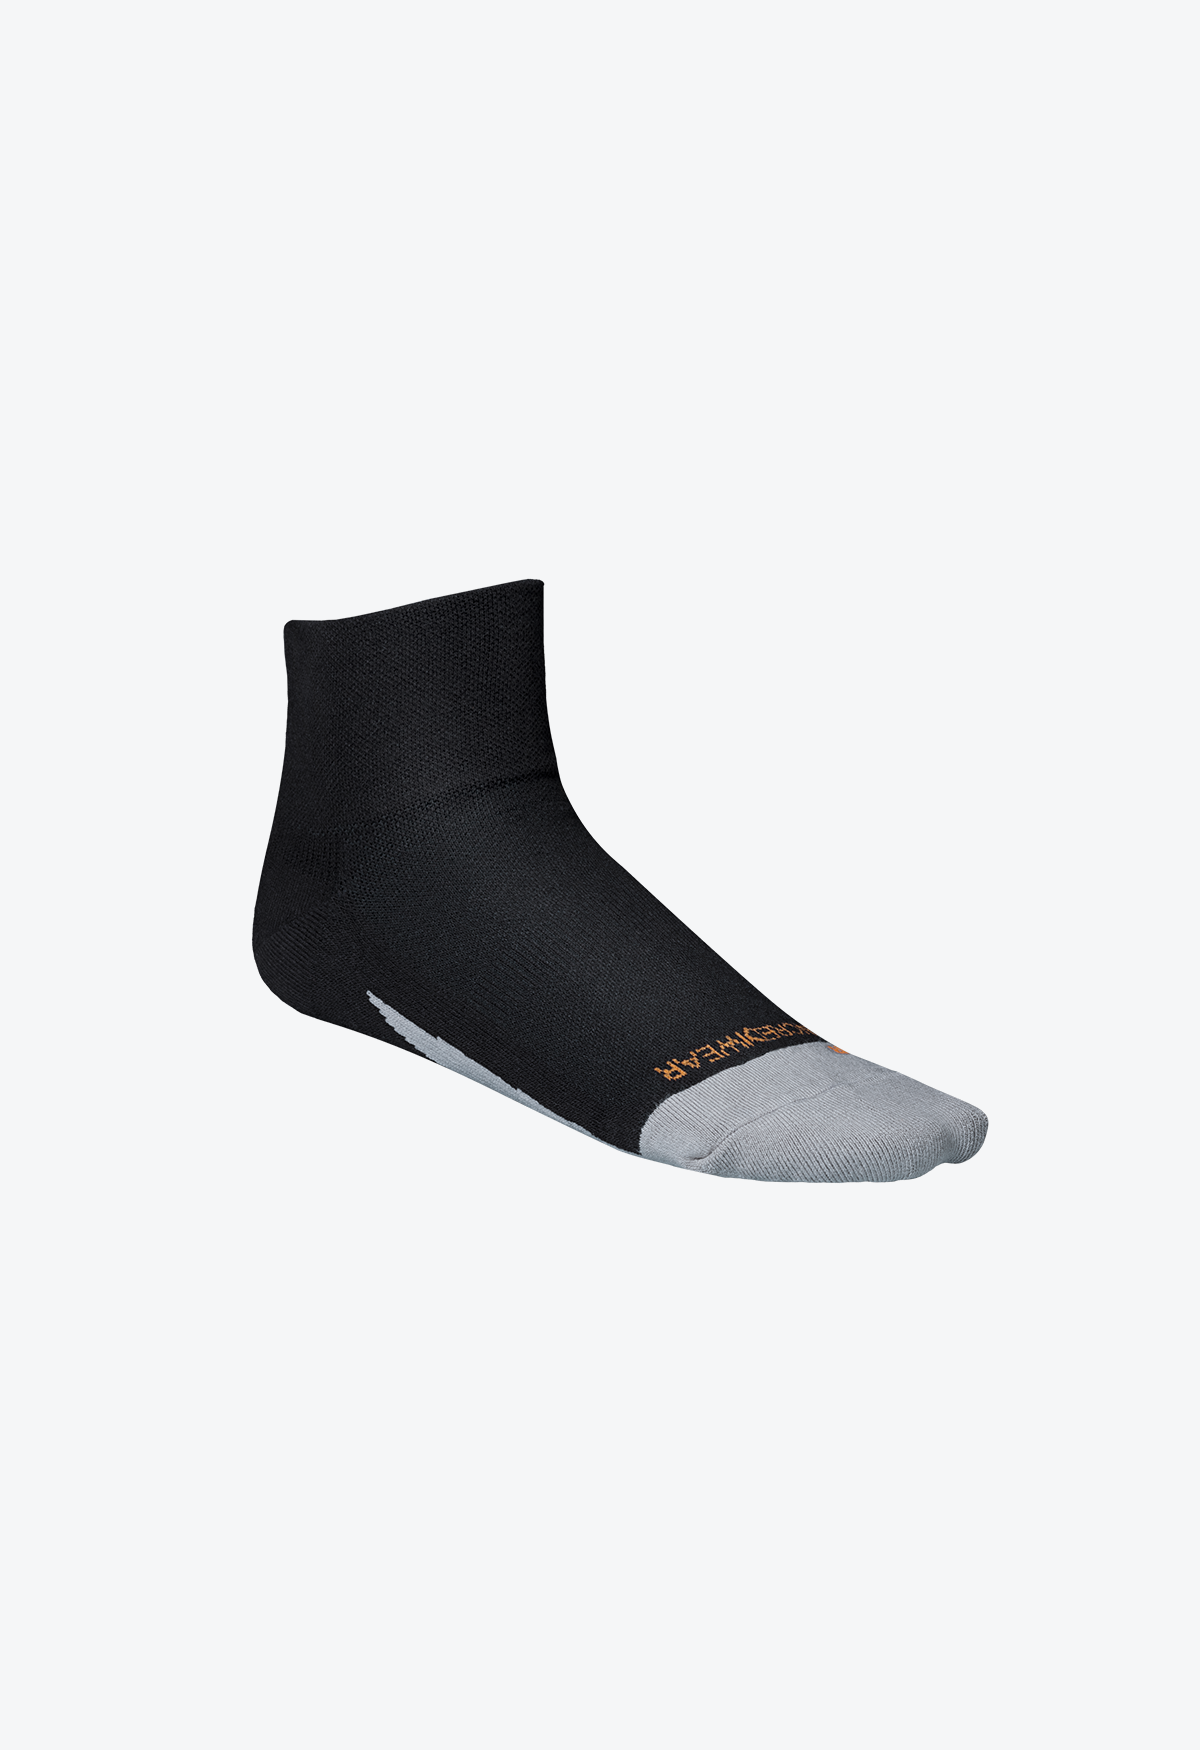 Incrediwear Sports Socks